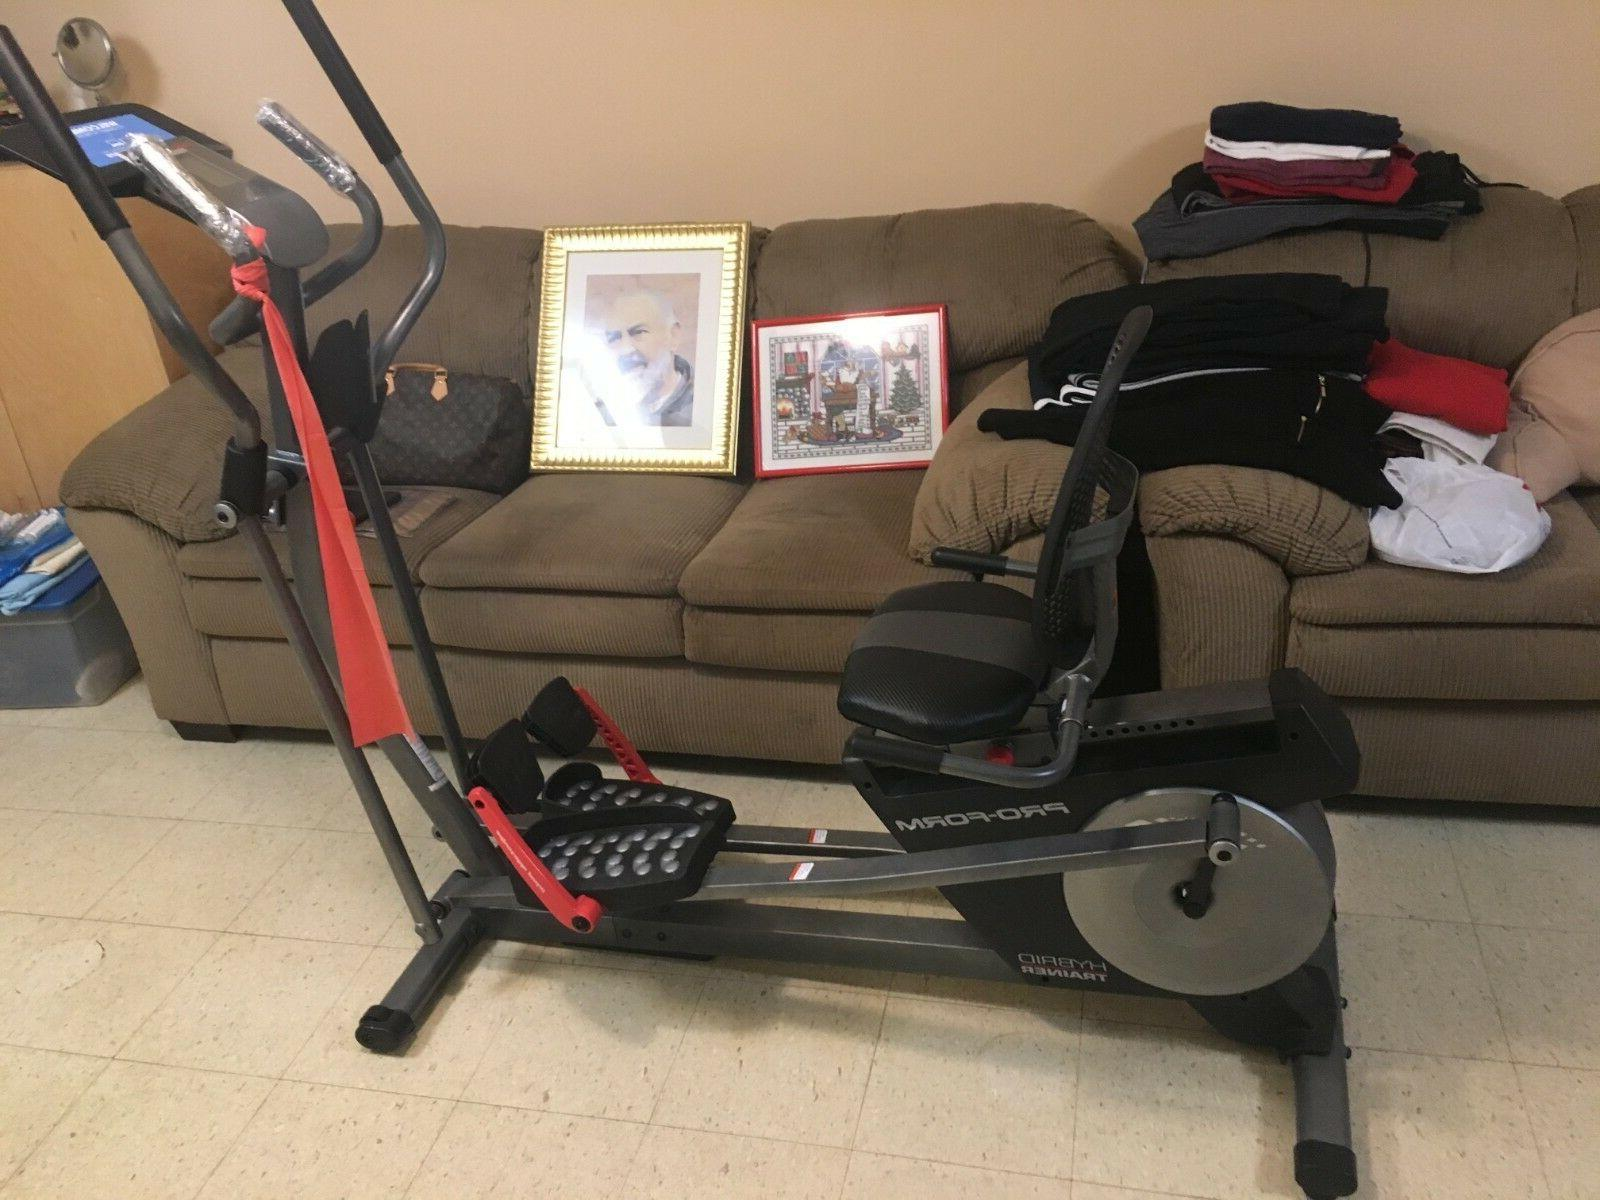 pfel05815 hybrid trainer pro elliptical machine pickup